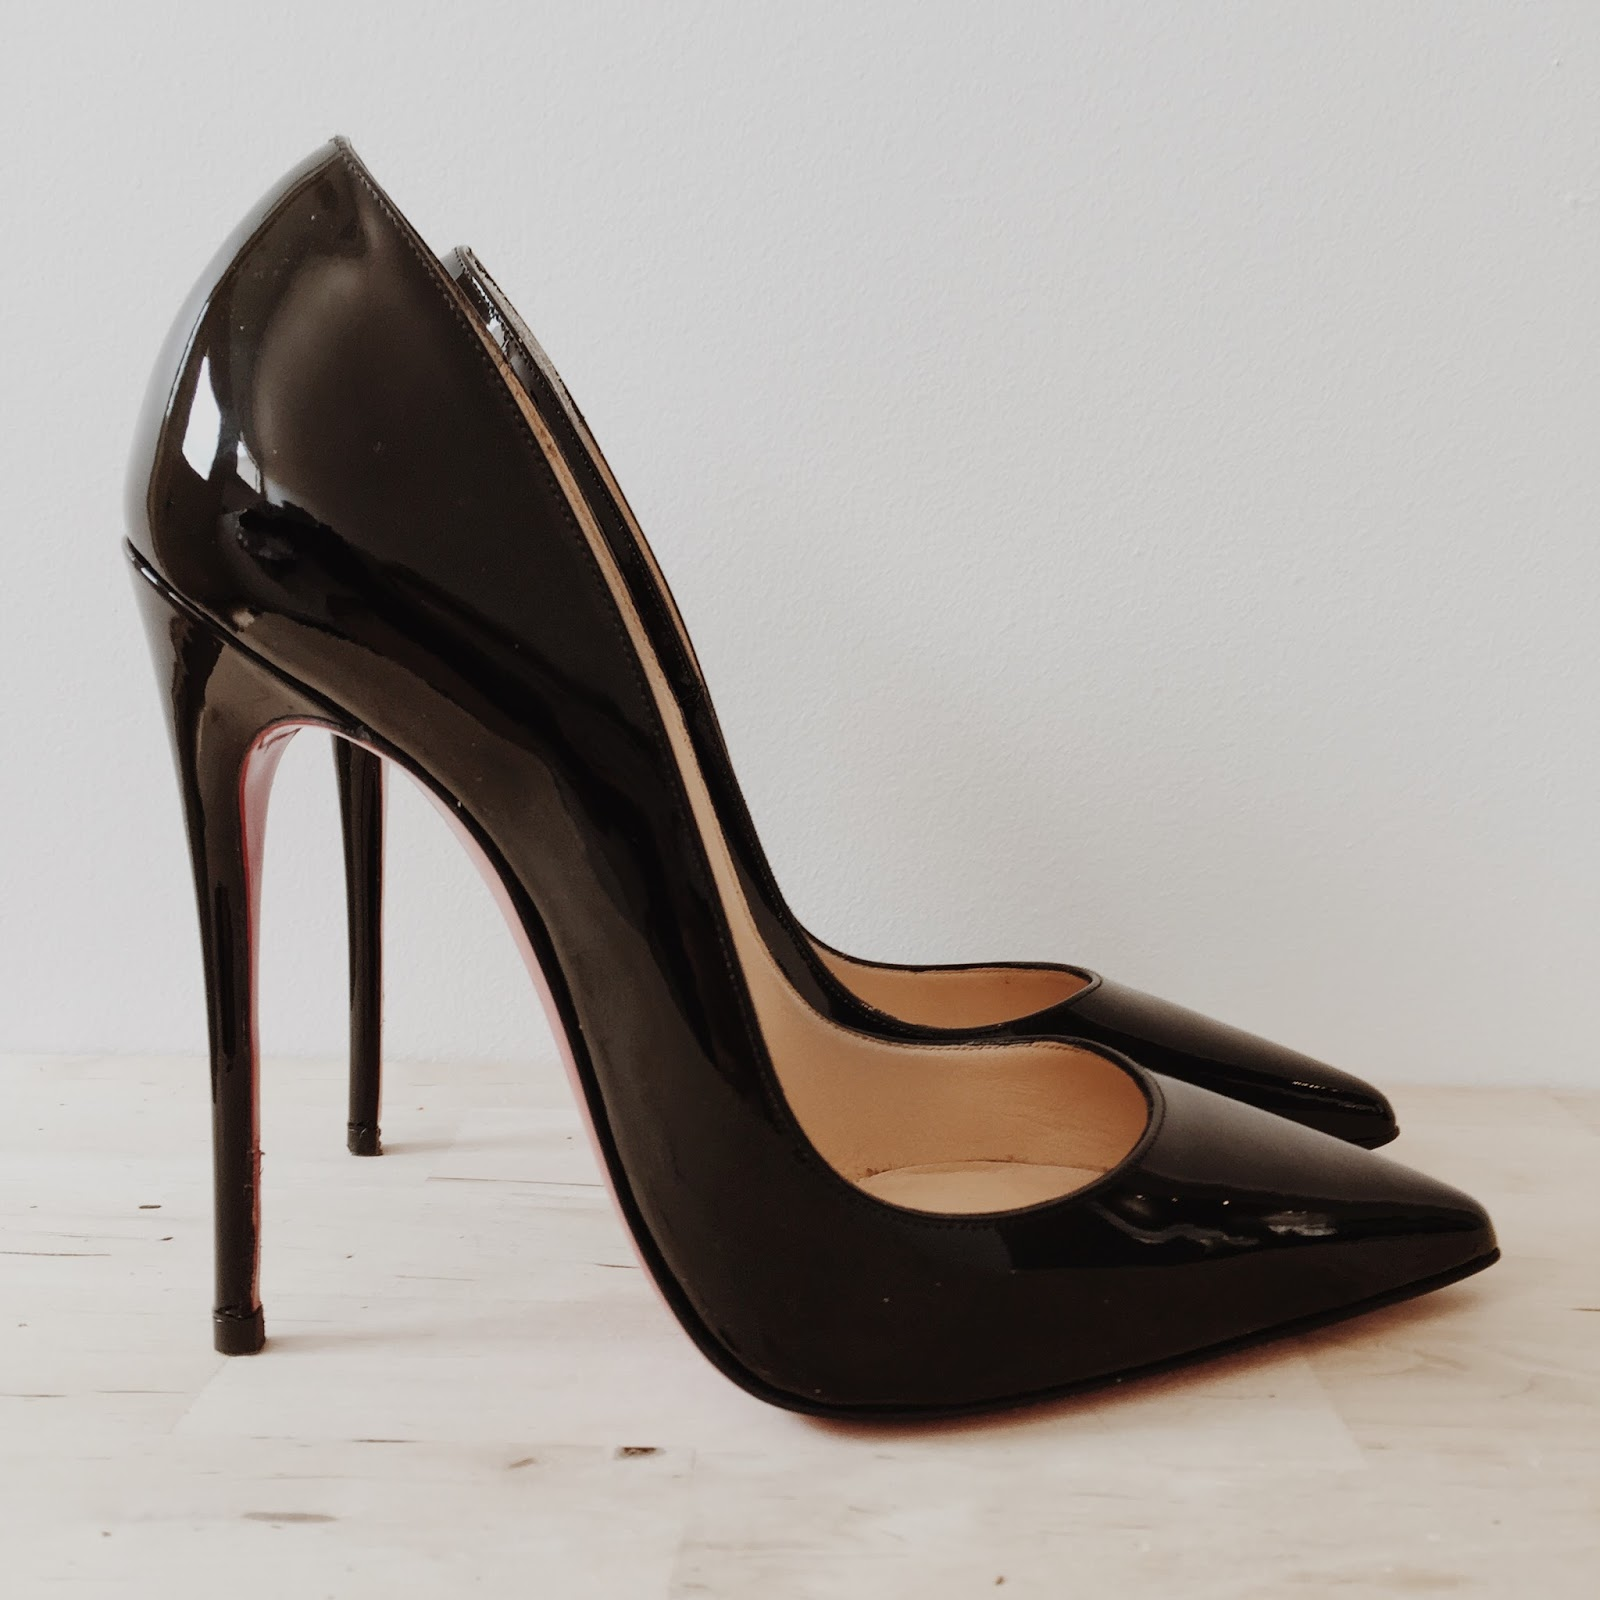 new style 2628f 2902f J.N.: Review - Christian Louboutin So Kate 120mm Black Patent